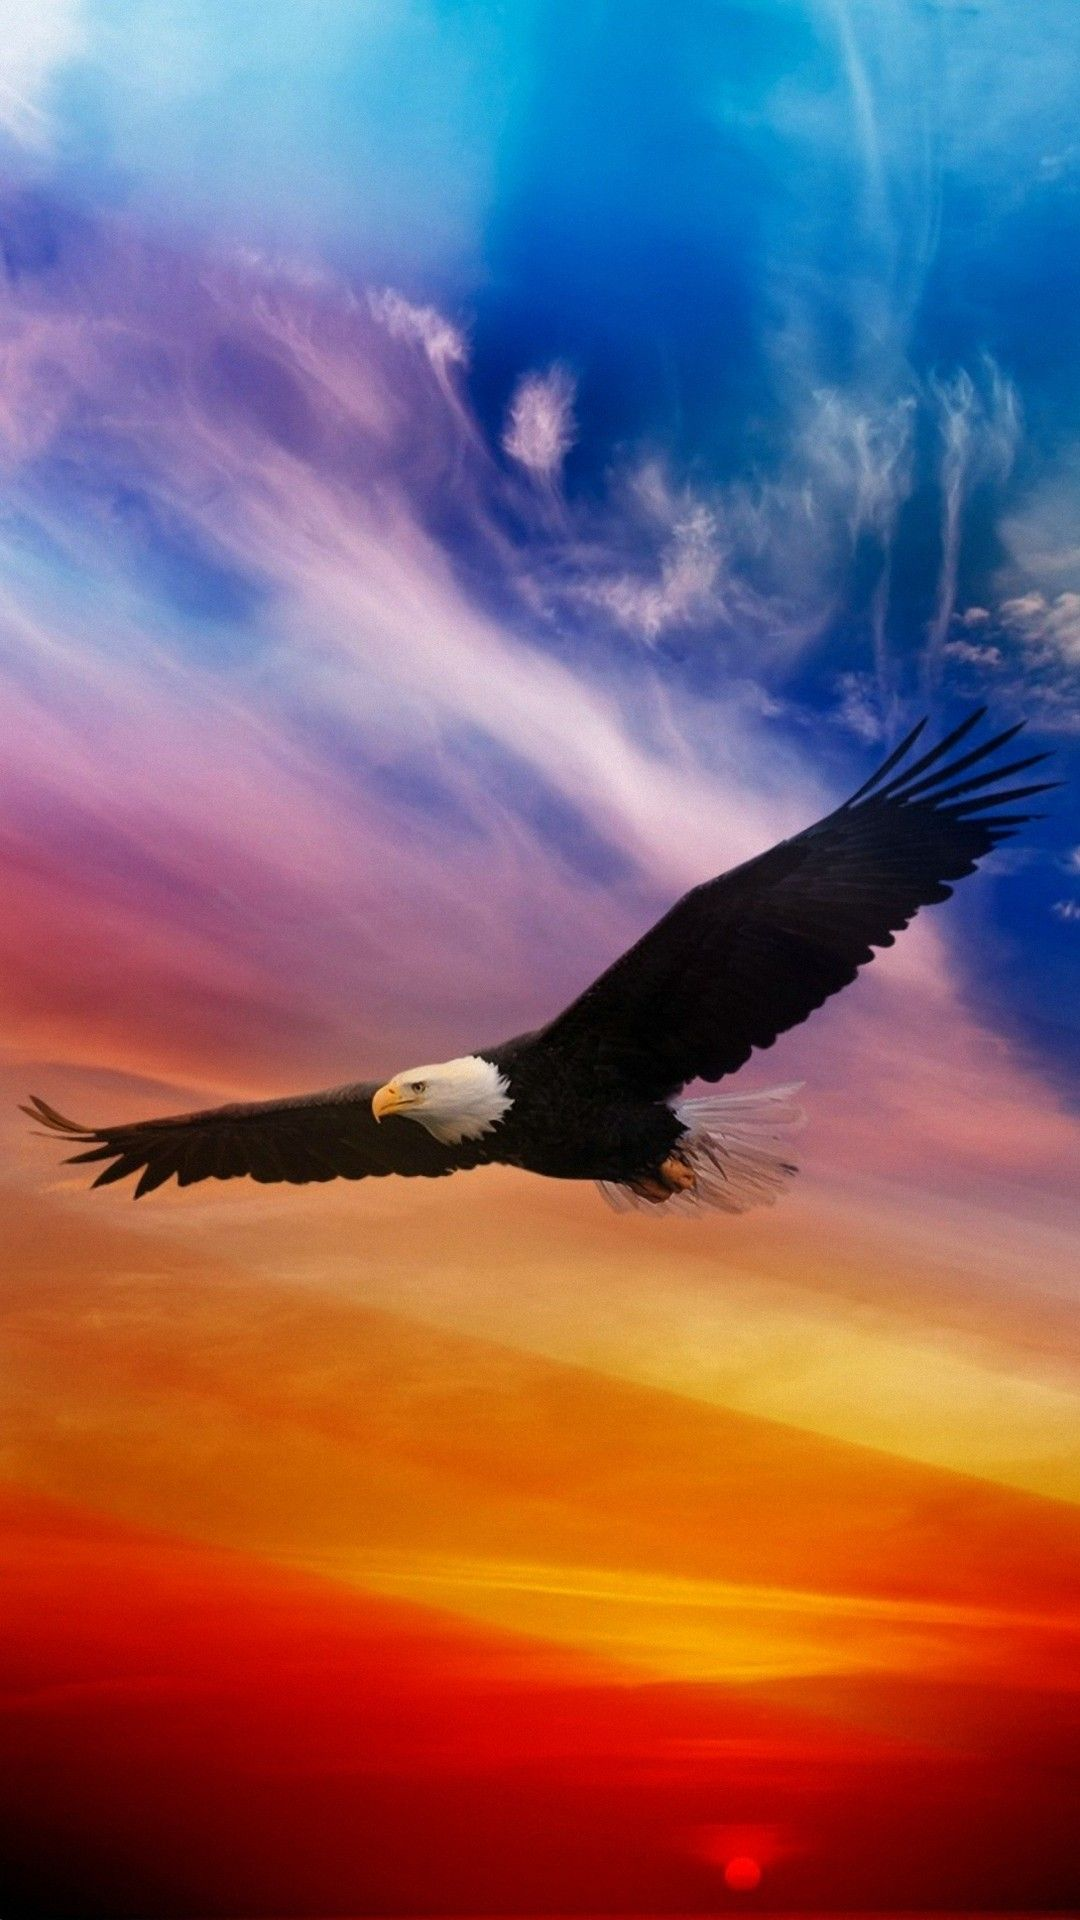 eagle wallpaper iphone hd - 2018 iphone wallpapers | pinterest